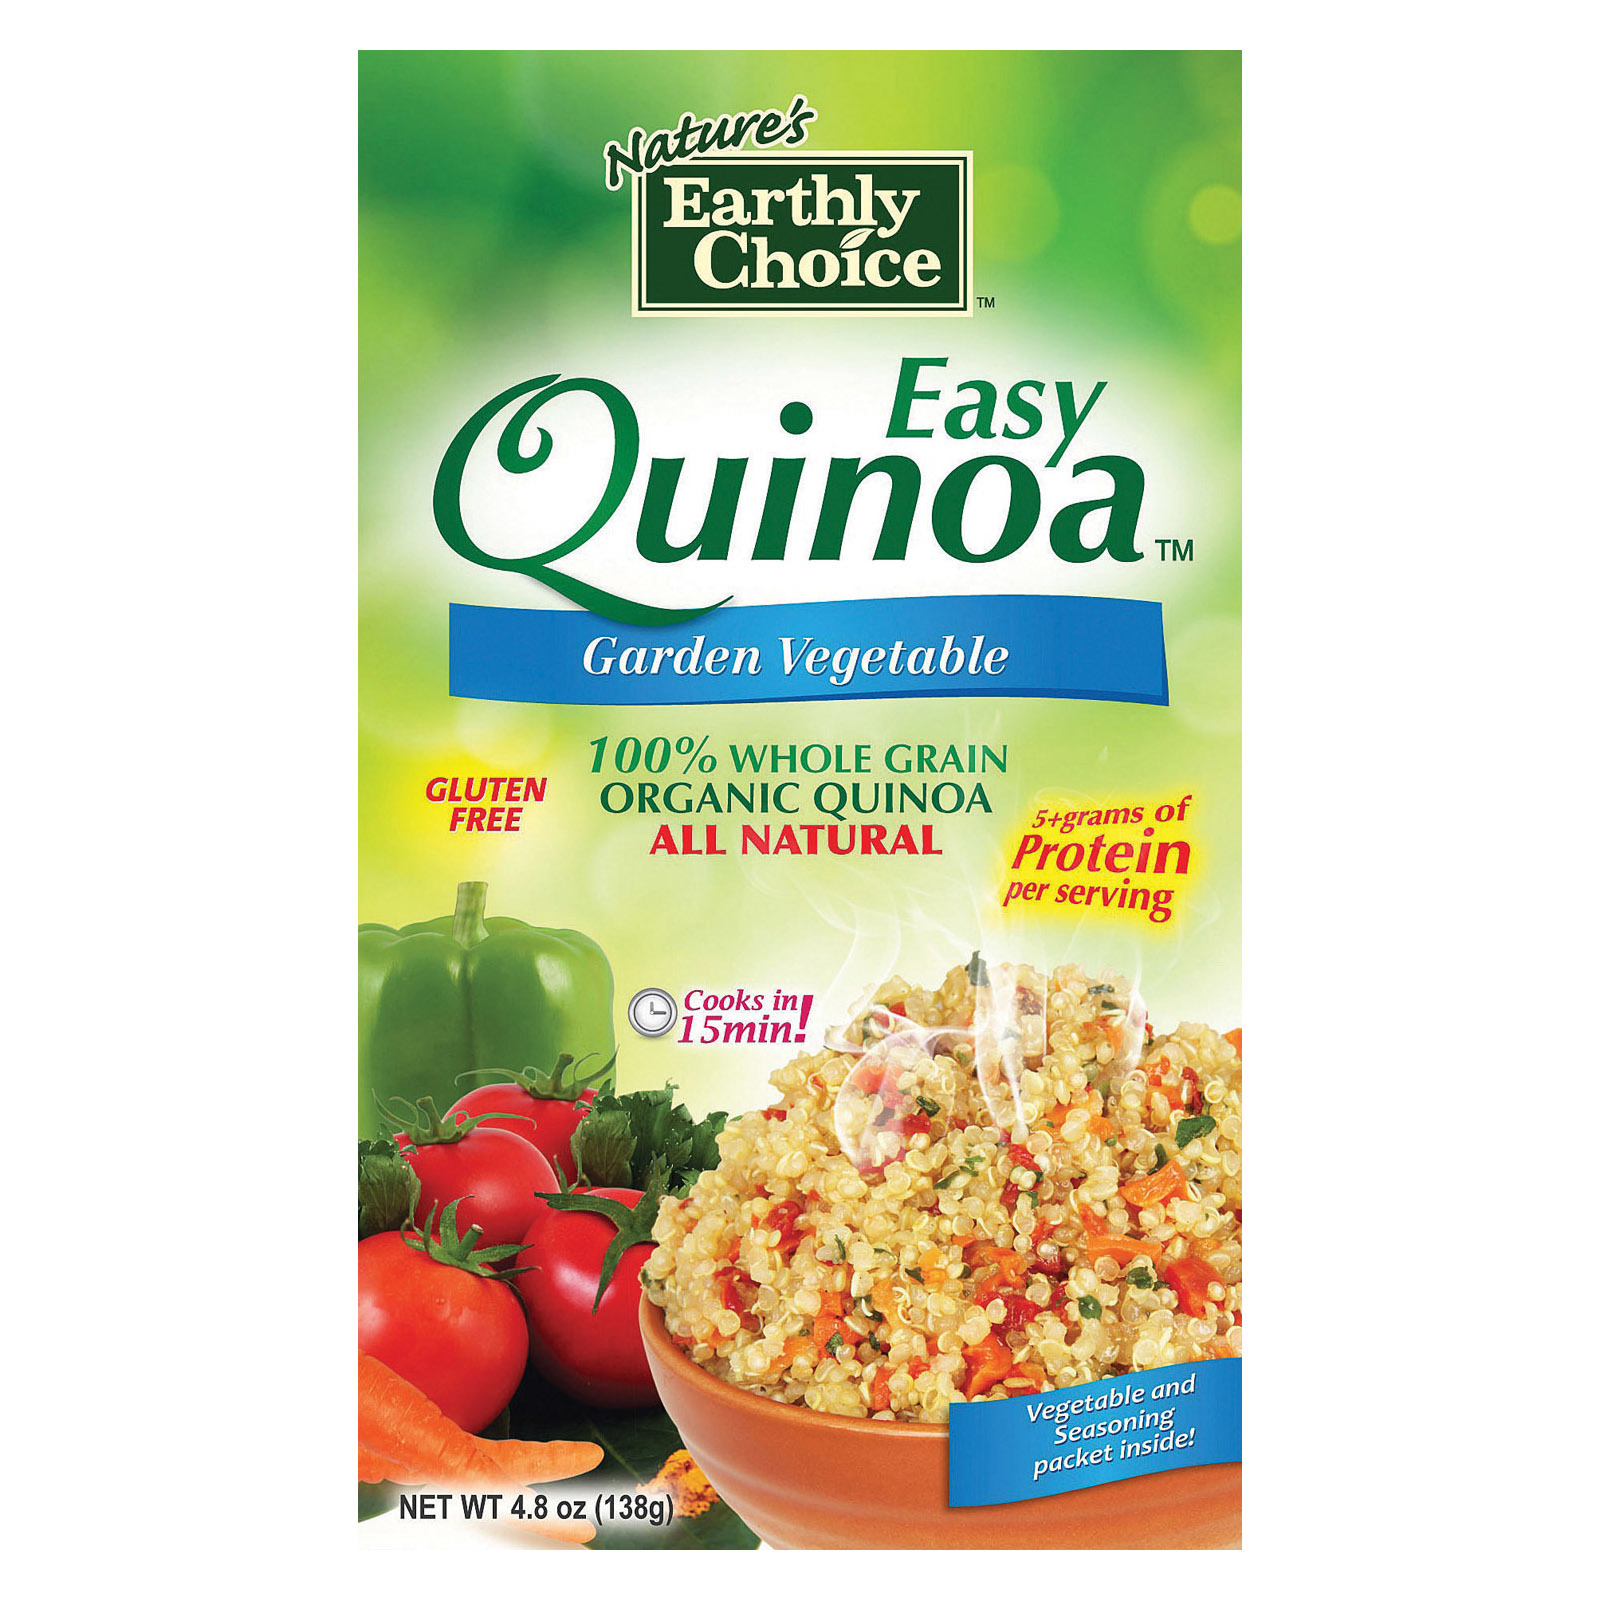 Nature's Earthly Choice Easy Quinoa - Garlic and Herb - Case of 6 - 4.8 oz.